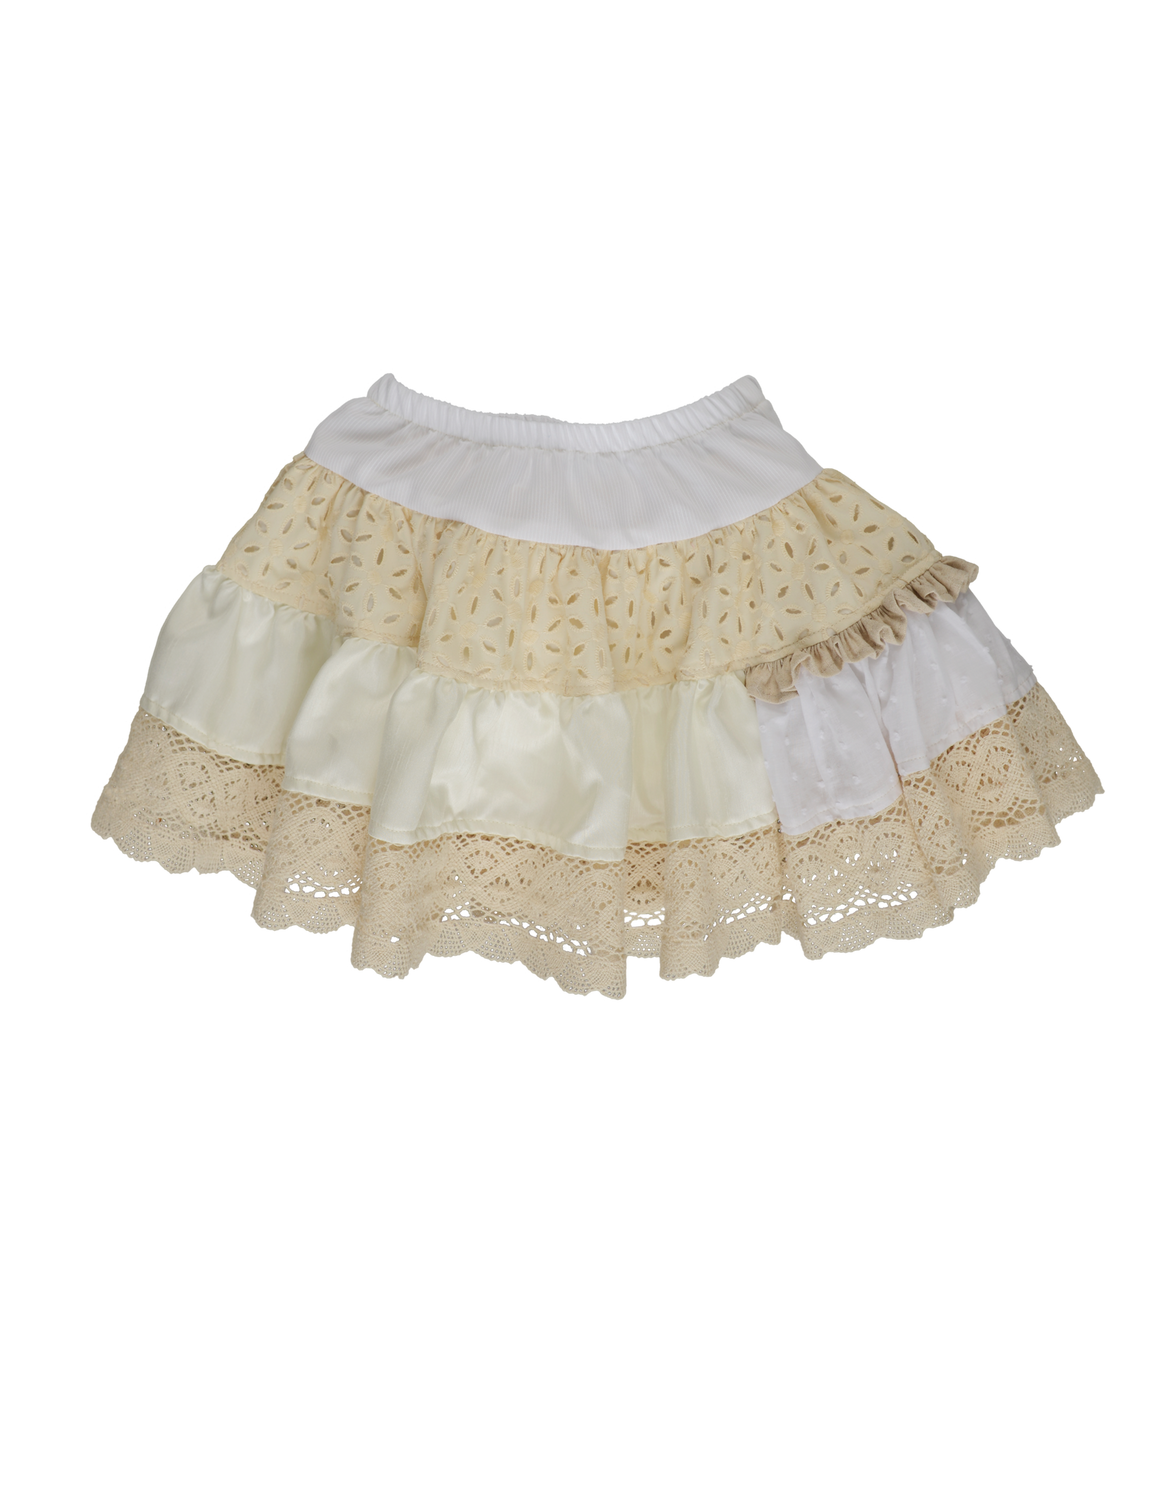 MIMI SKIRT-Cream PRE-SALE (WILL SHIP ON FEBRUARY 20TH)